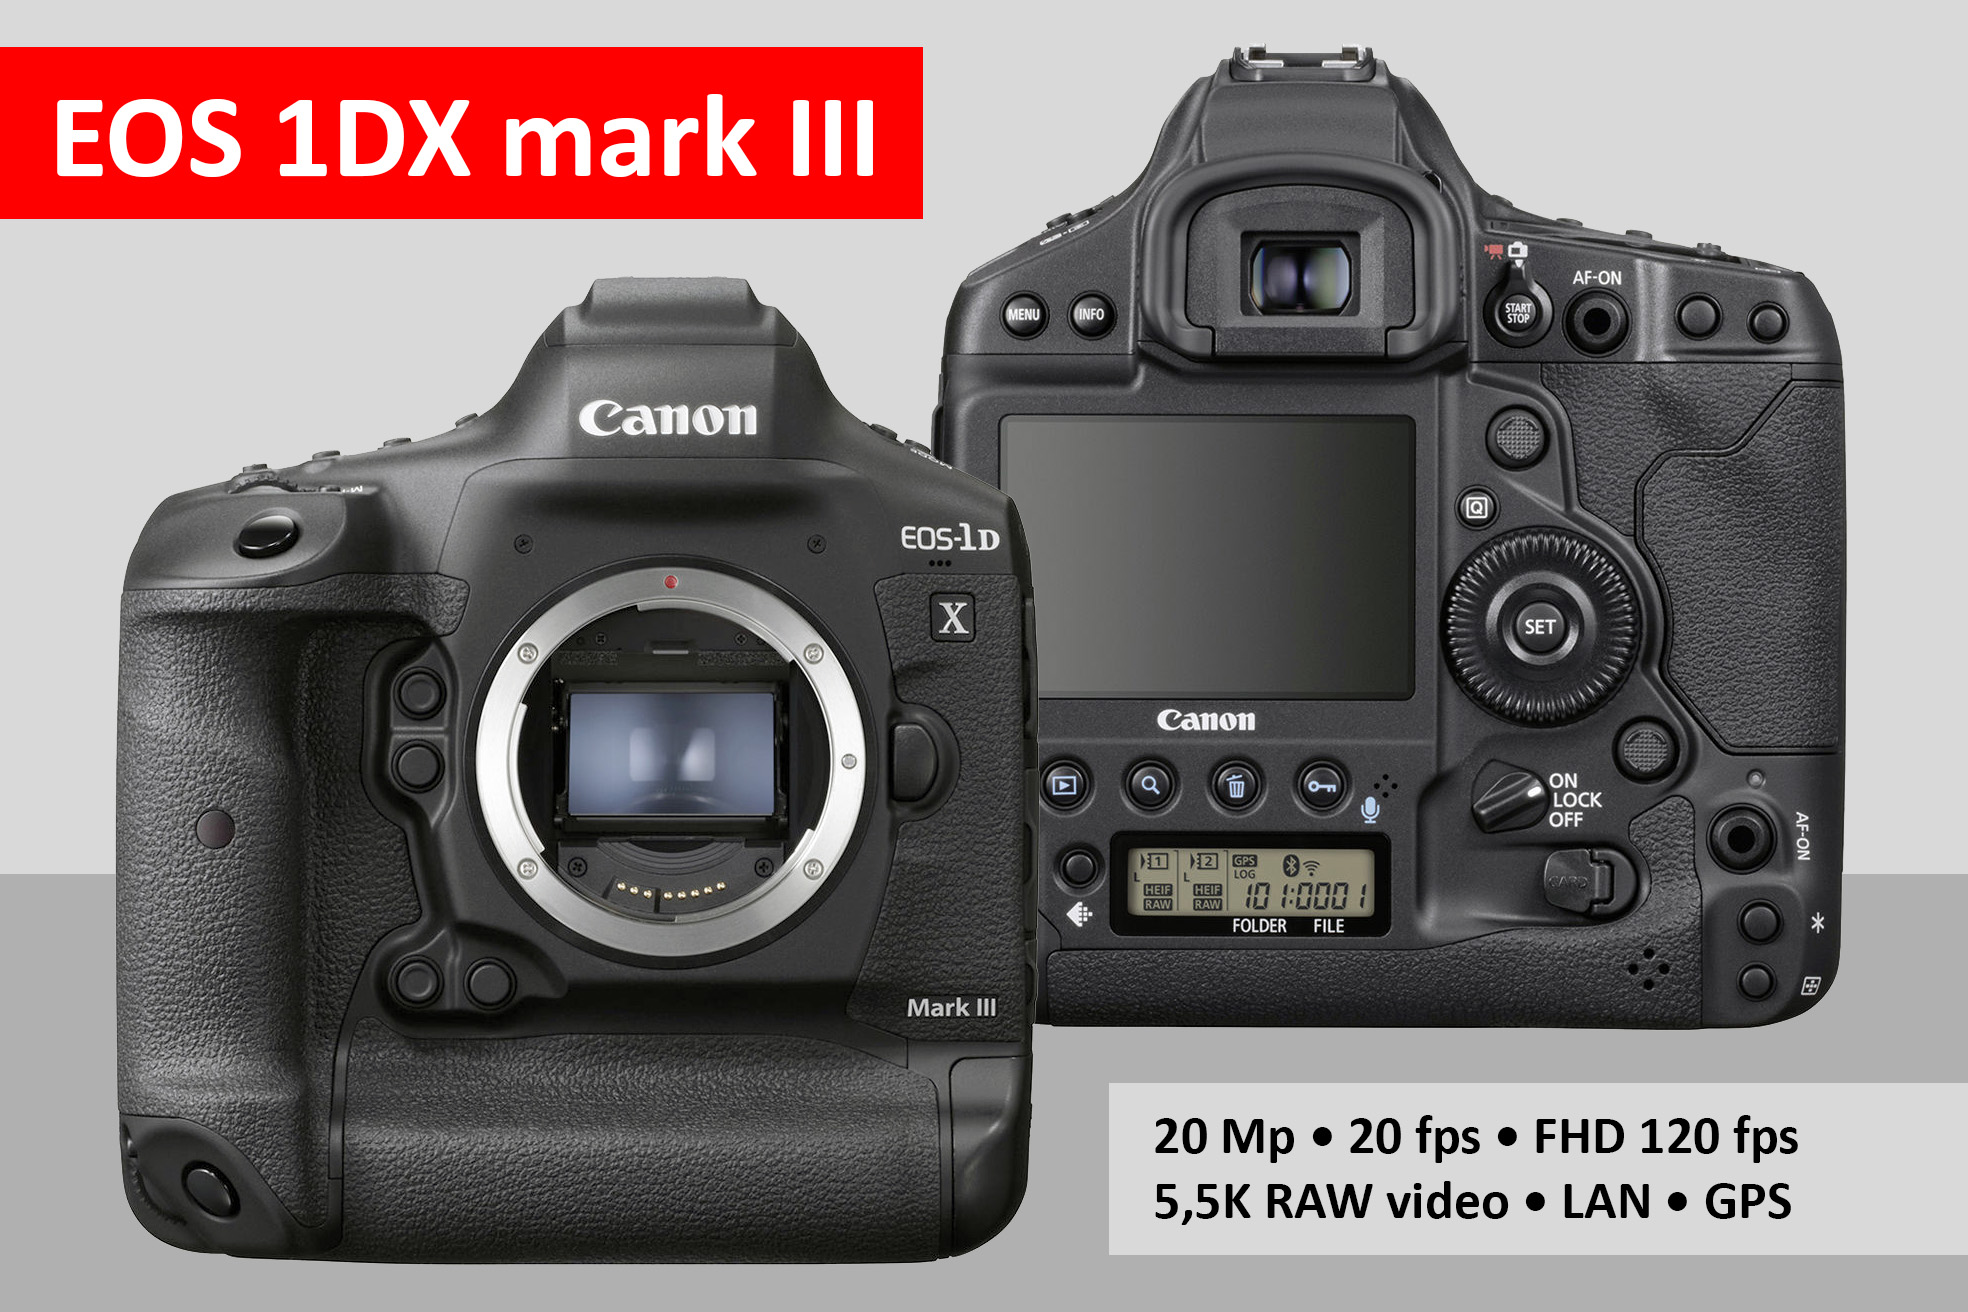 EOS 1DX mark III-visual